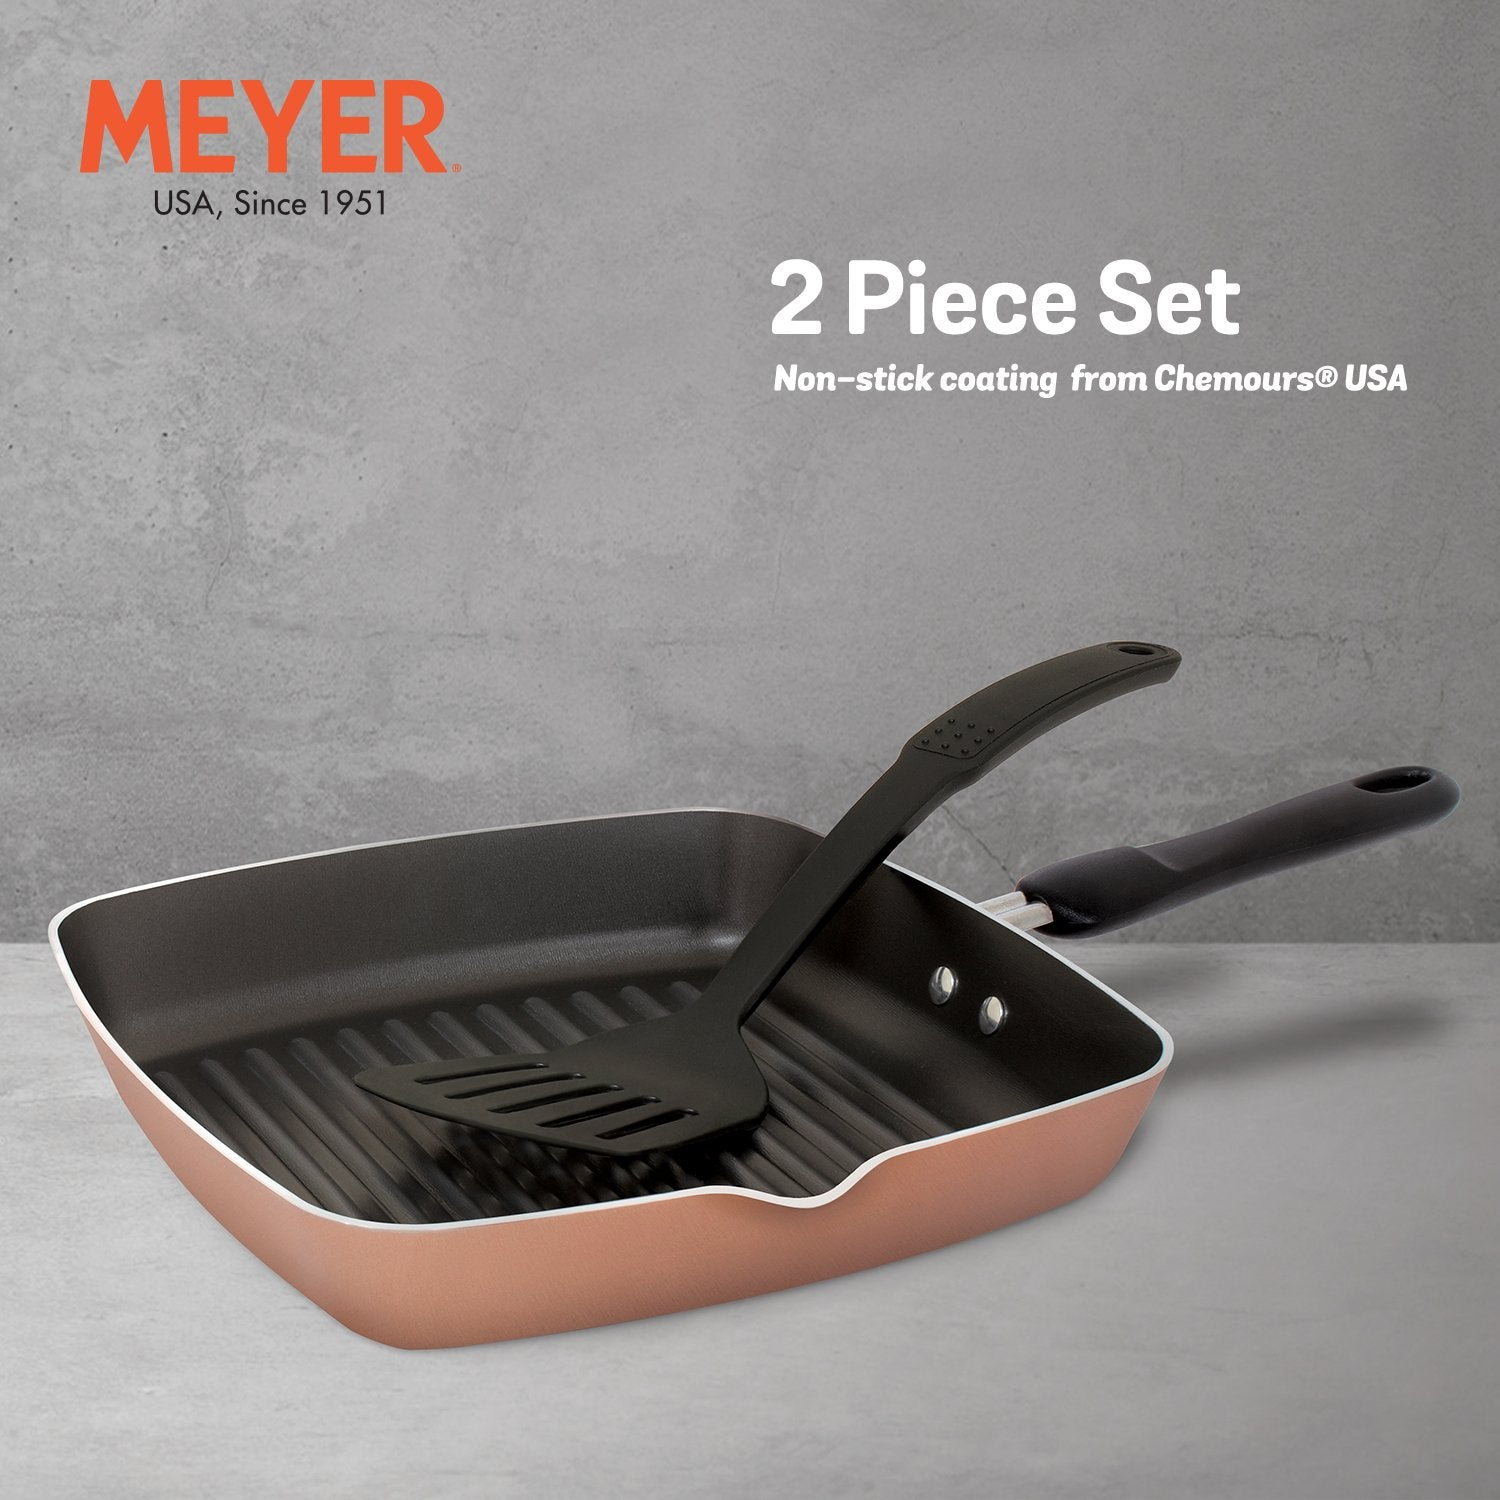 MEYER NON-STICK 2-PIECE COOKWARE SET, GRILLPAN WITH ACCESSORY (SUITABLE FOR GAS & ELECTRIC COOKTOPS)